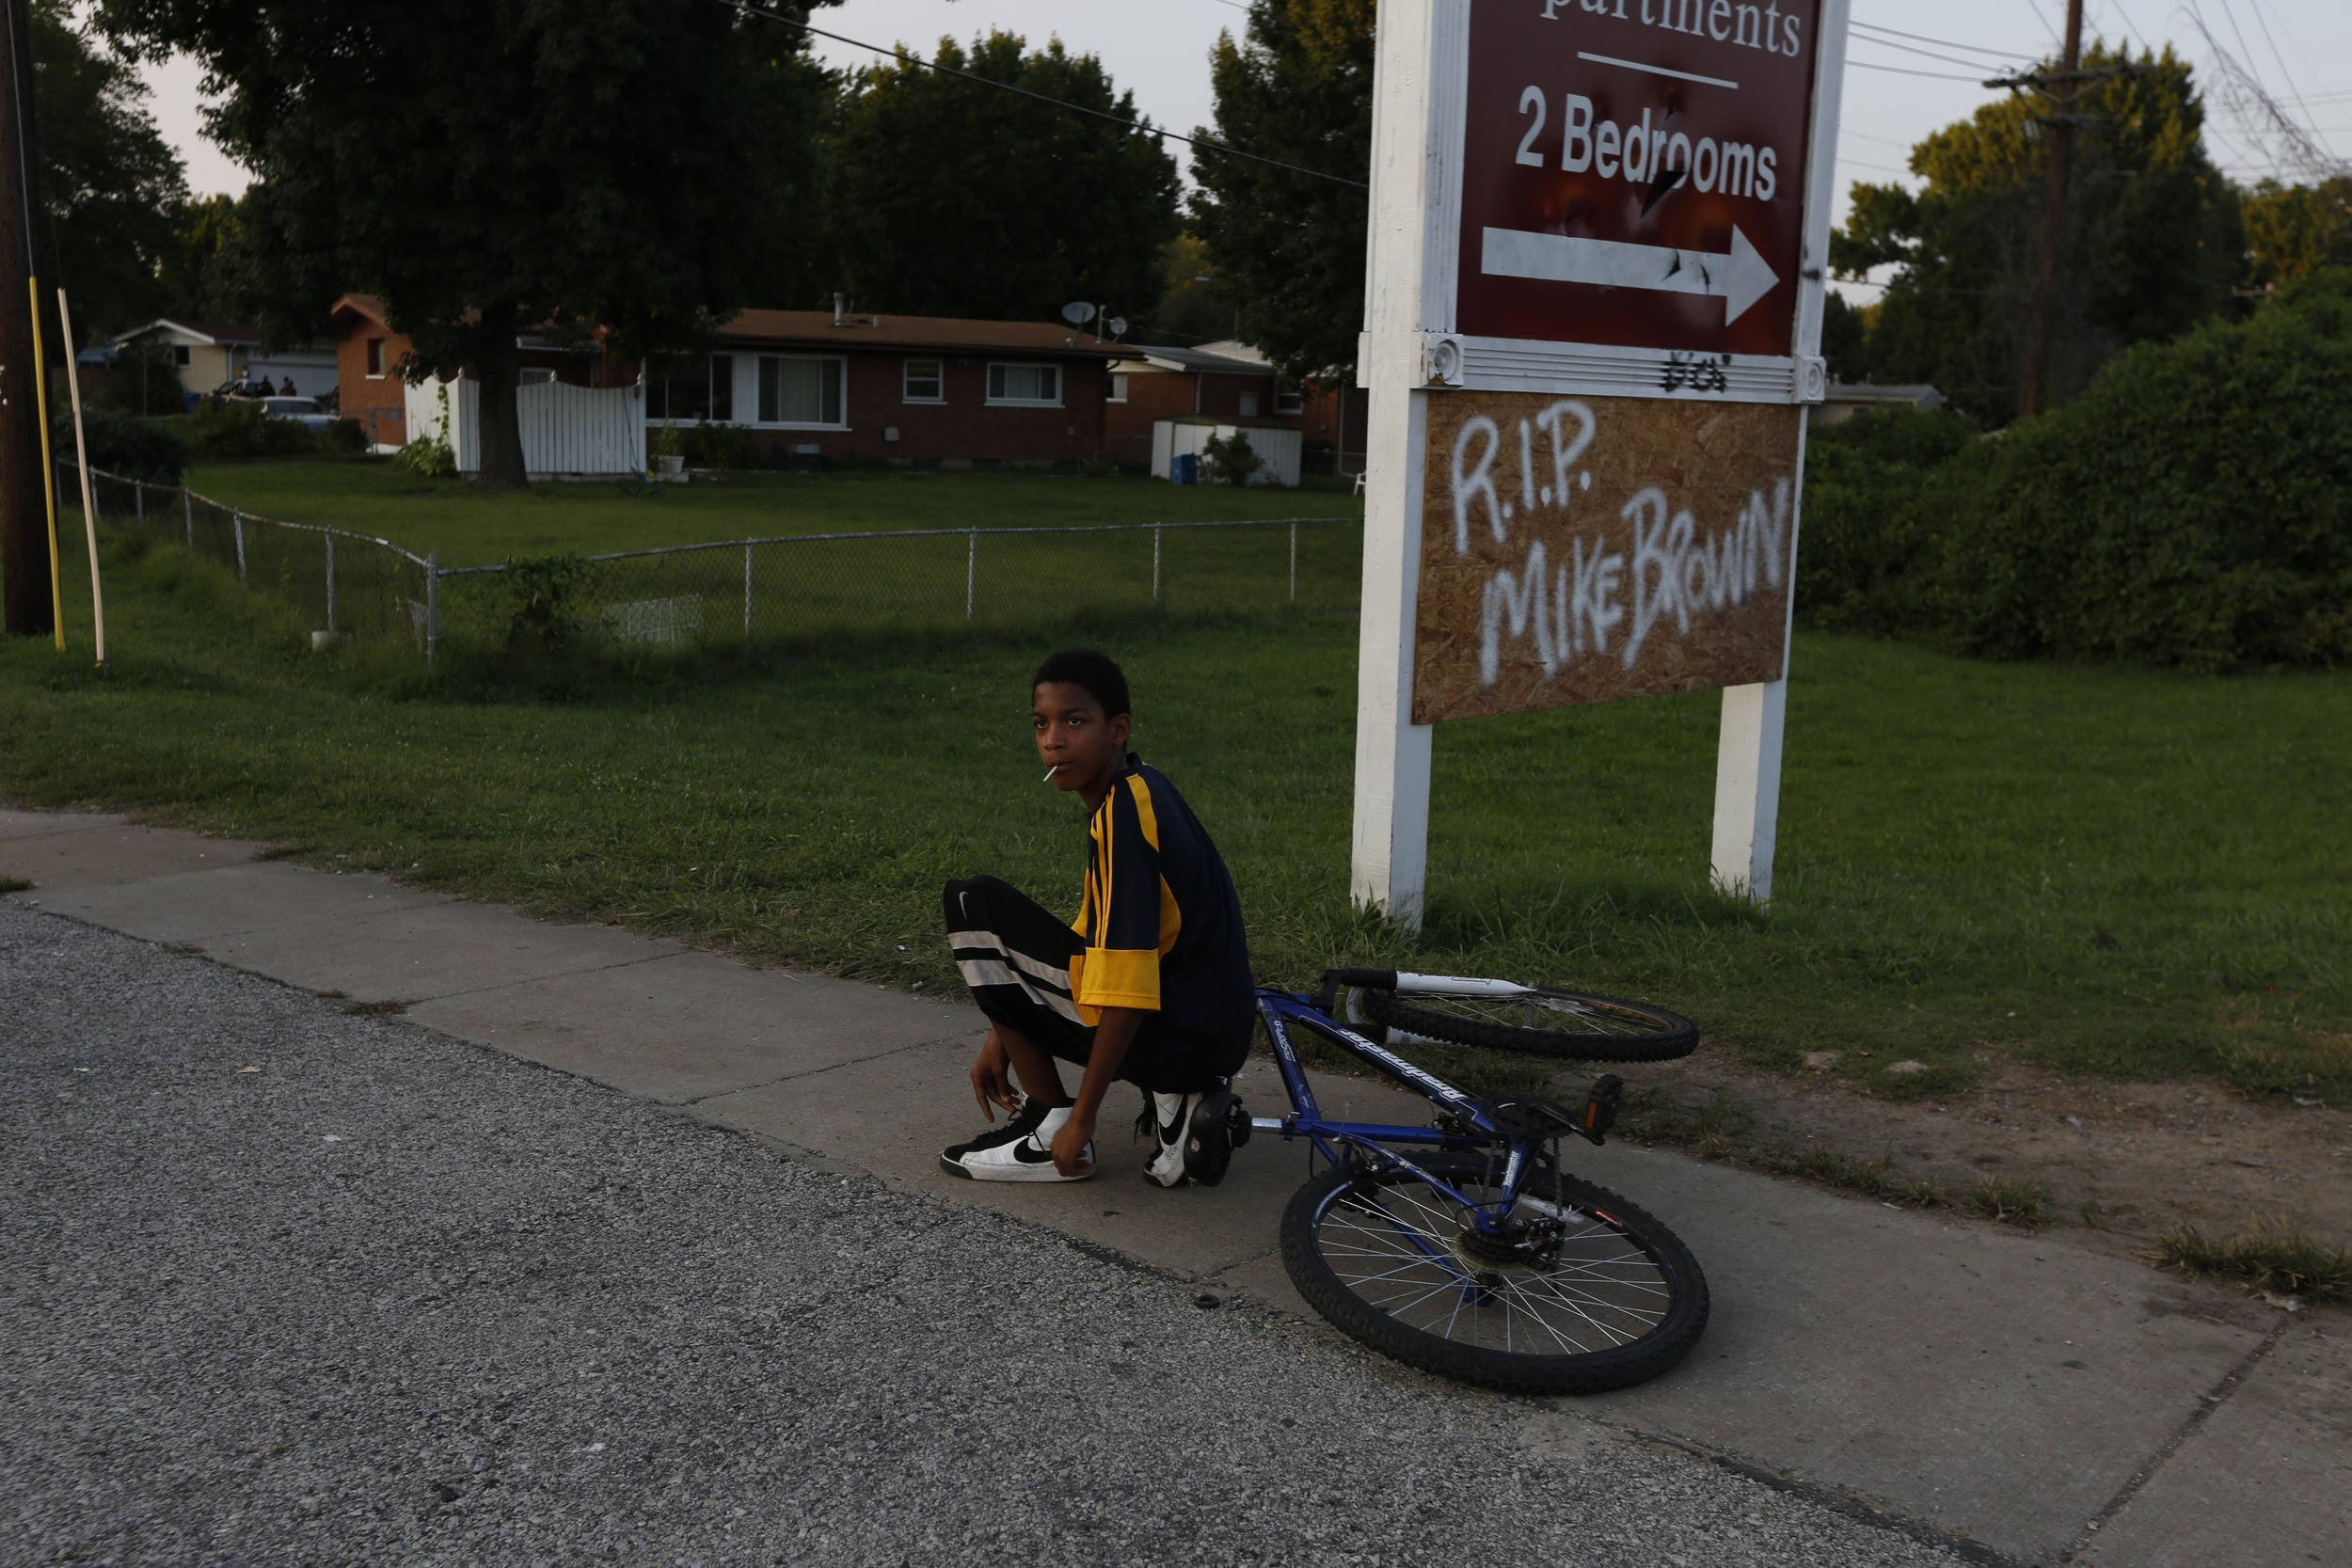 A child stops to tie his shoe along W. Florissant Ave. August 19, 2014 in Ferguson, MO. W. Florissant Ave. has been the location of protests and occasional rioting related to the shooting of an unarmed Michael Brown by Ferguson police.